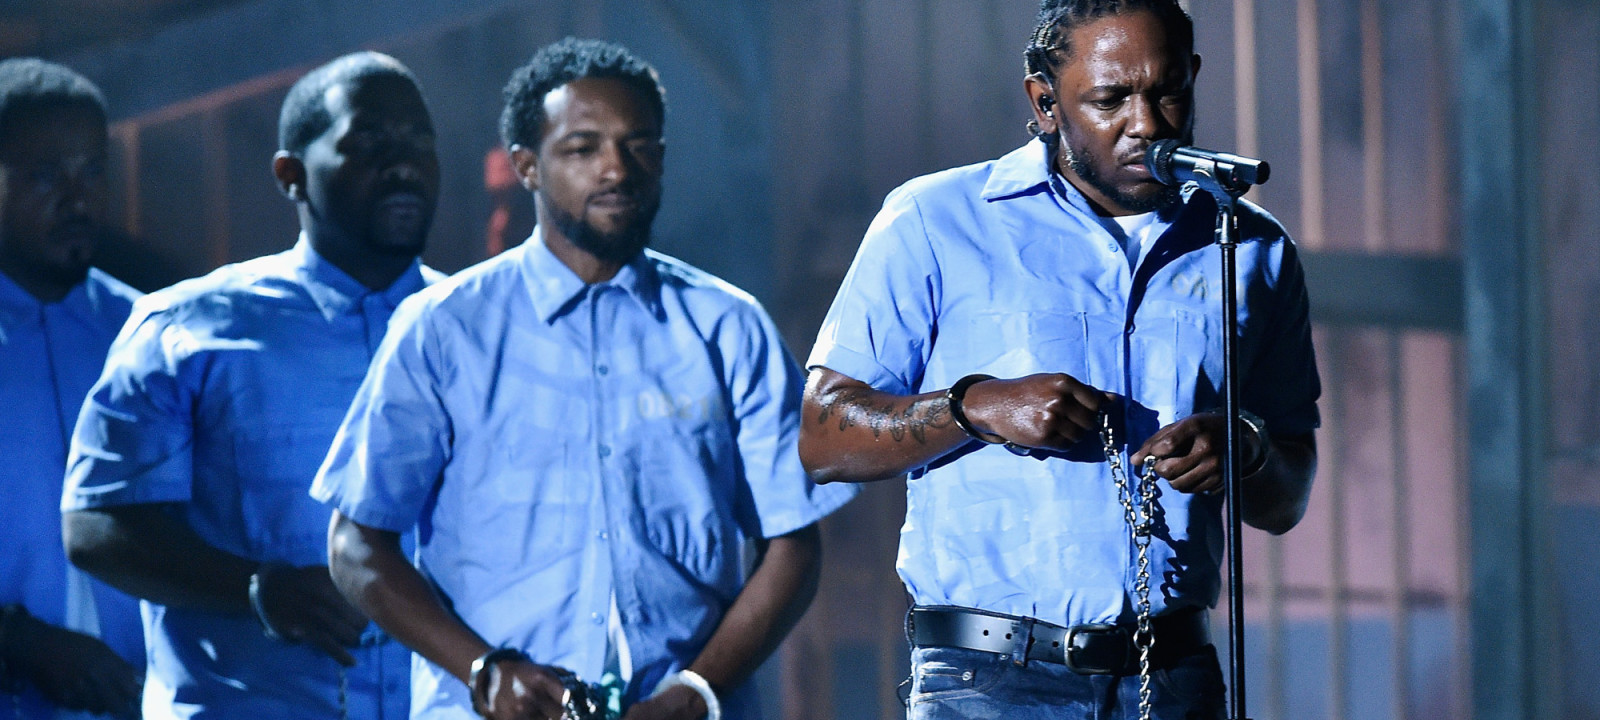 Rapper Kendrick Lamar (C) performs onstage during The 58th GRAMMY Awards at Staples Center on February 15, 2016 in Los Angeles, California.